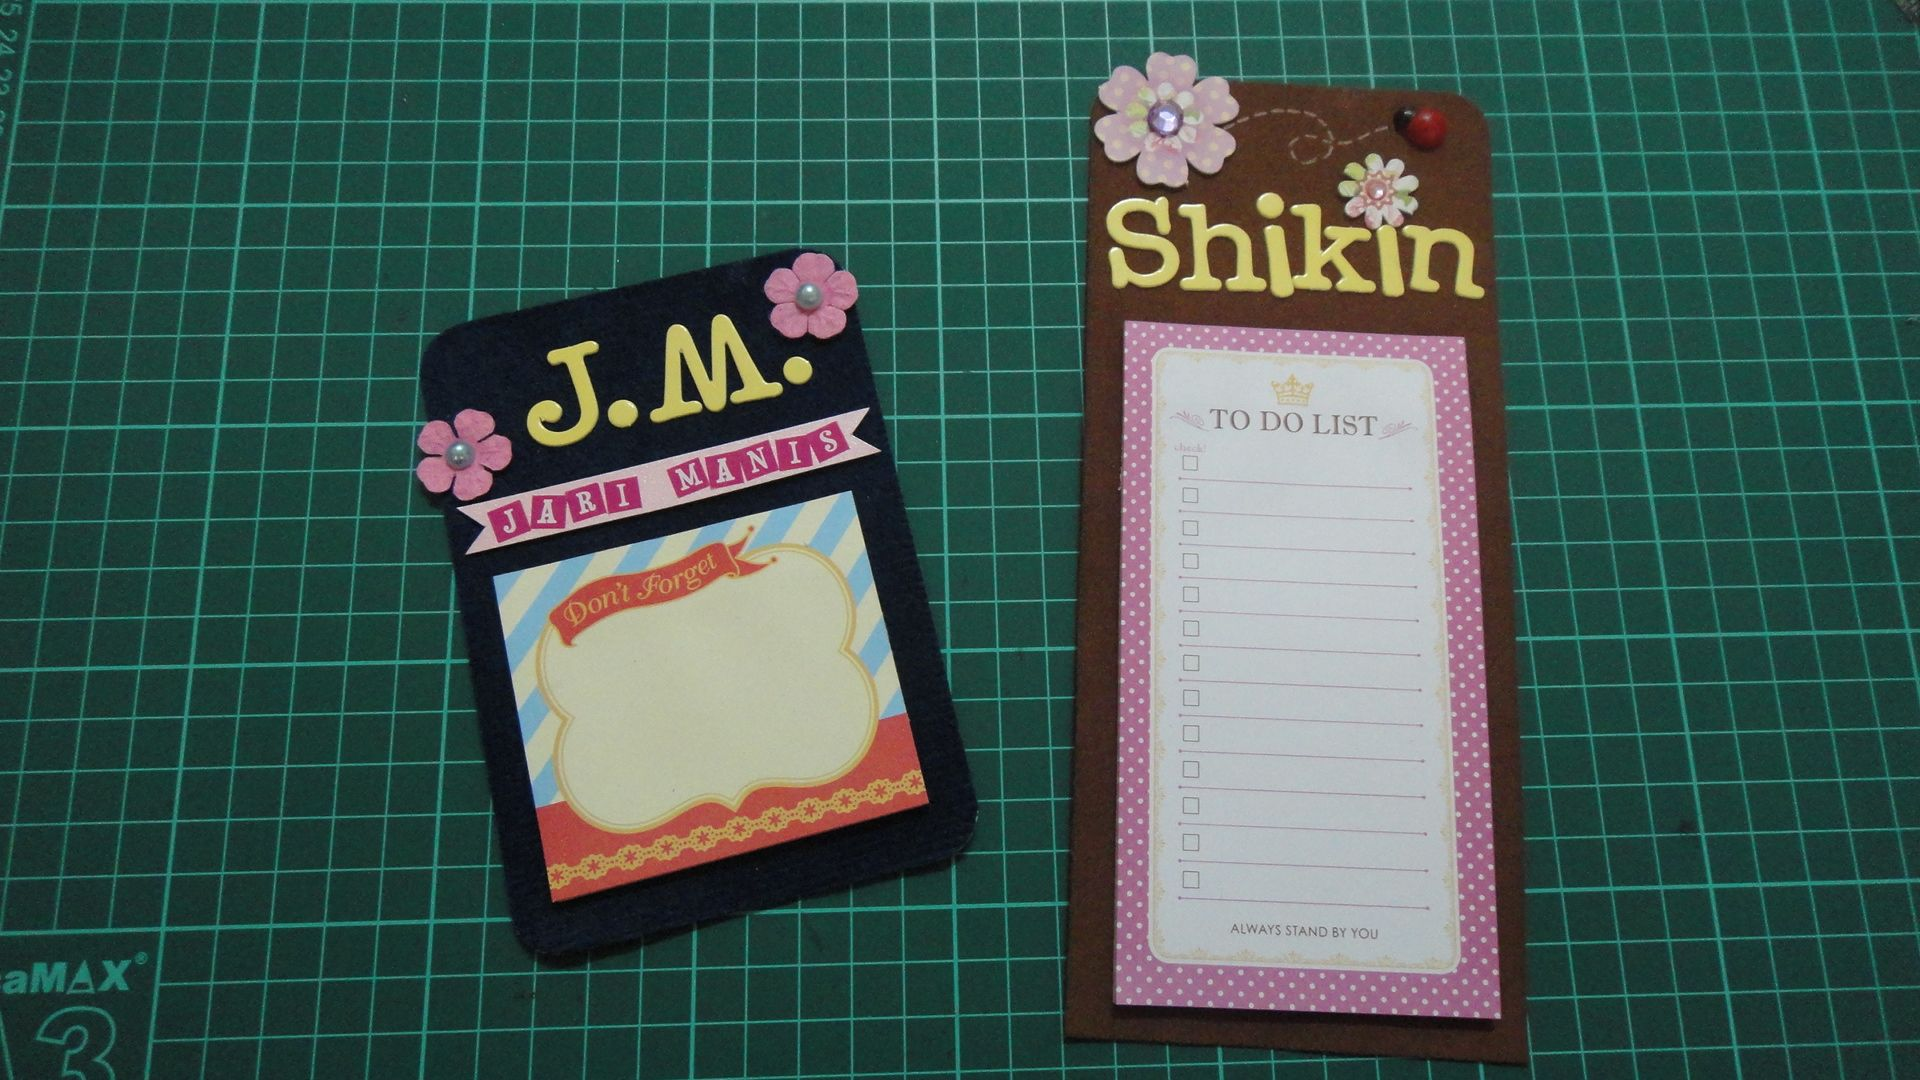 Diy Fridge Magnets Using Magnet Sheet And Sticky Notes Paper Craft Projects Greeting Cards Handmade Paper Crafts